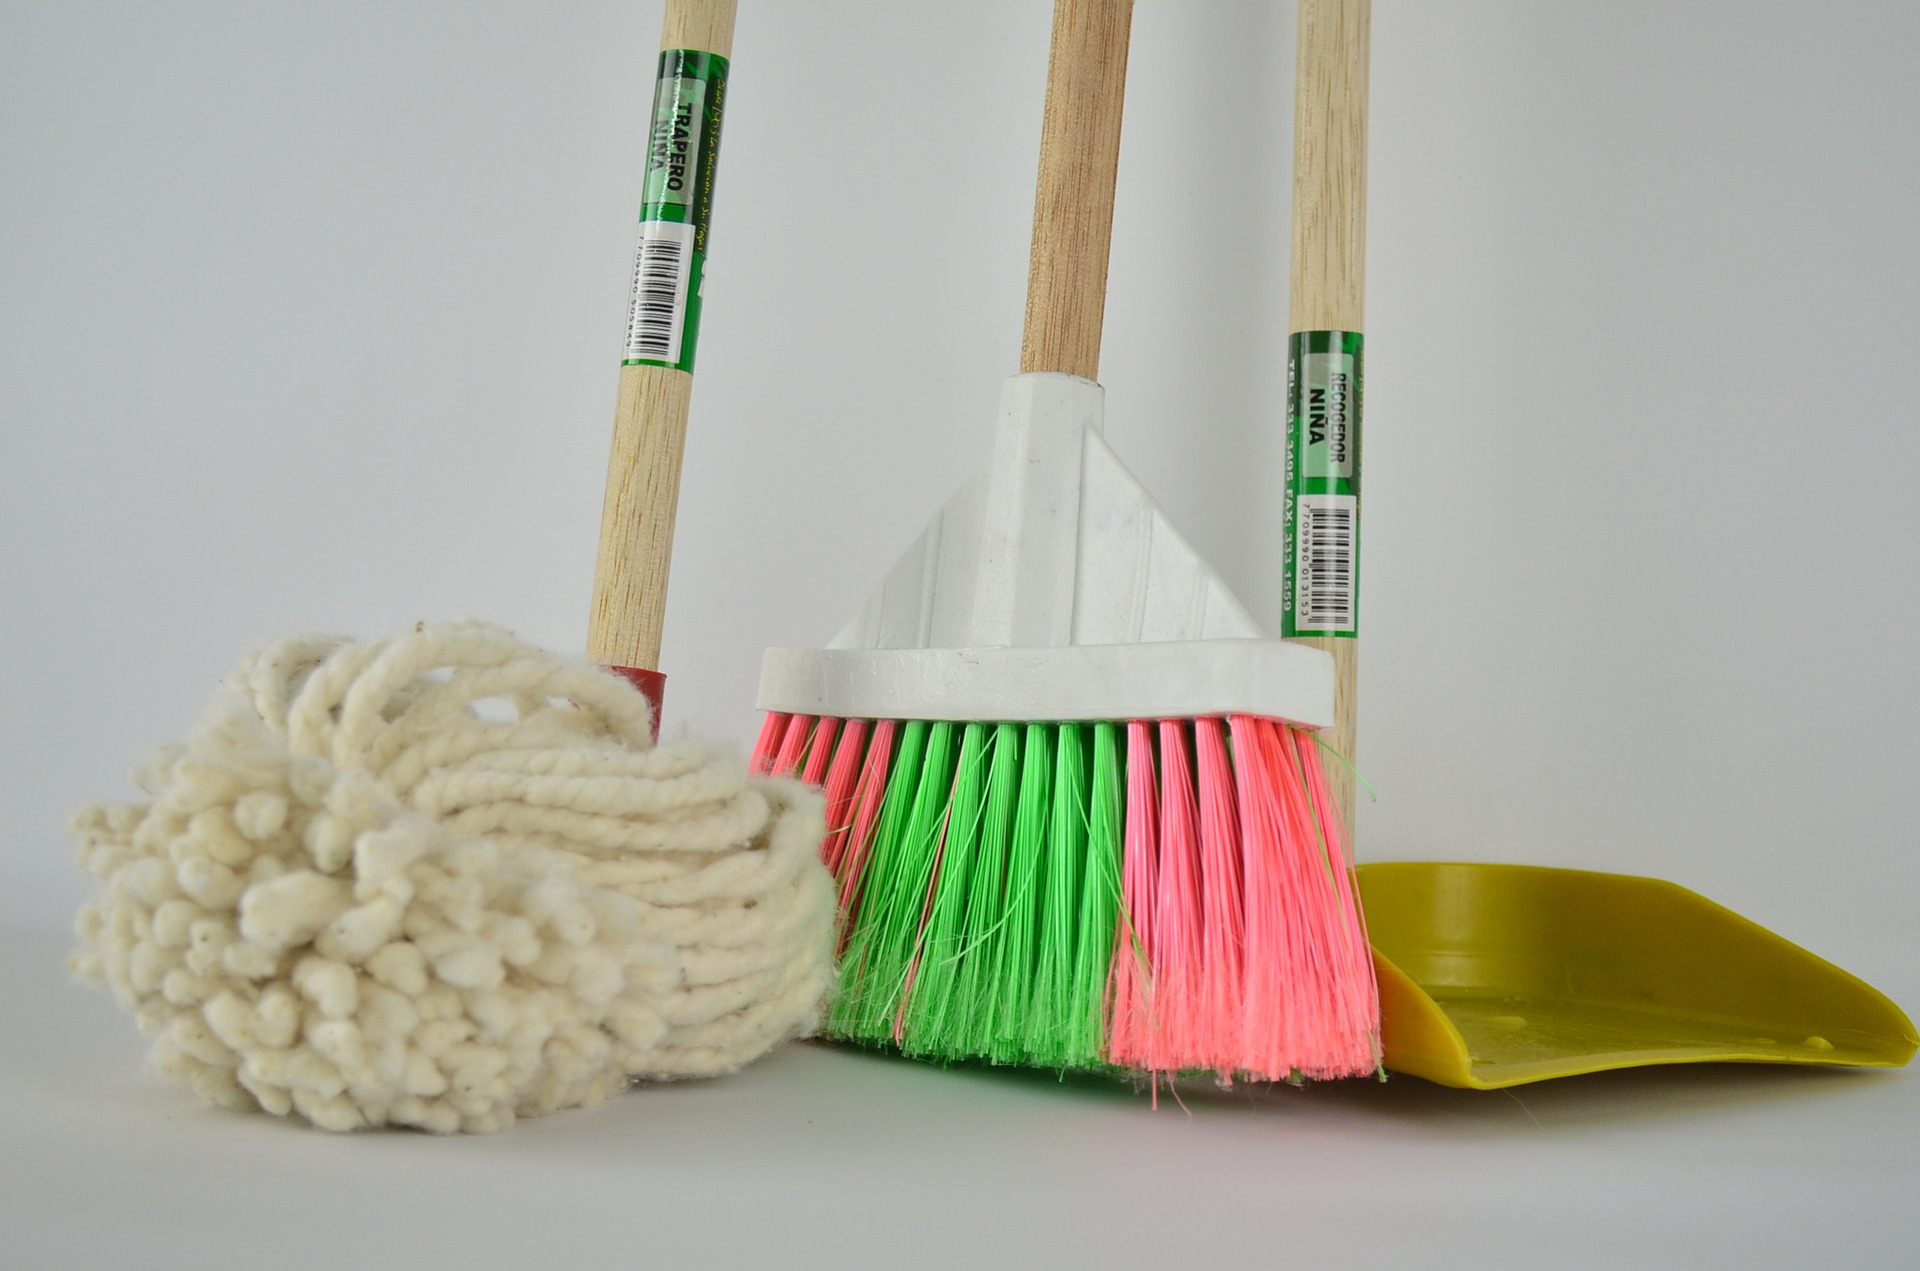 spring cleaning. mop, brush and broom